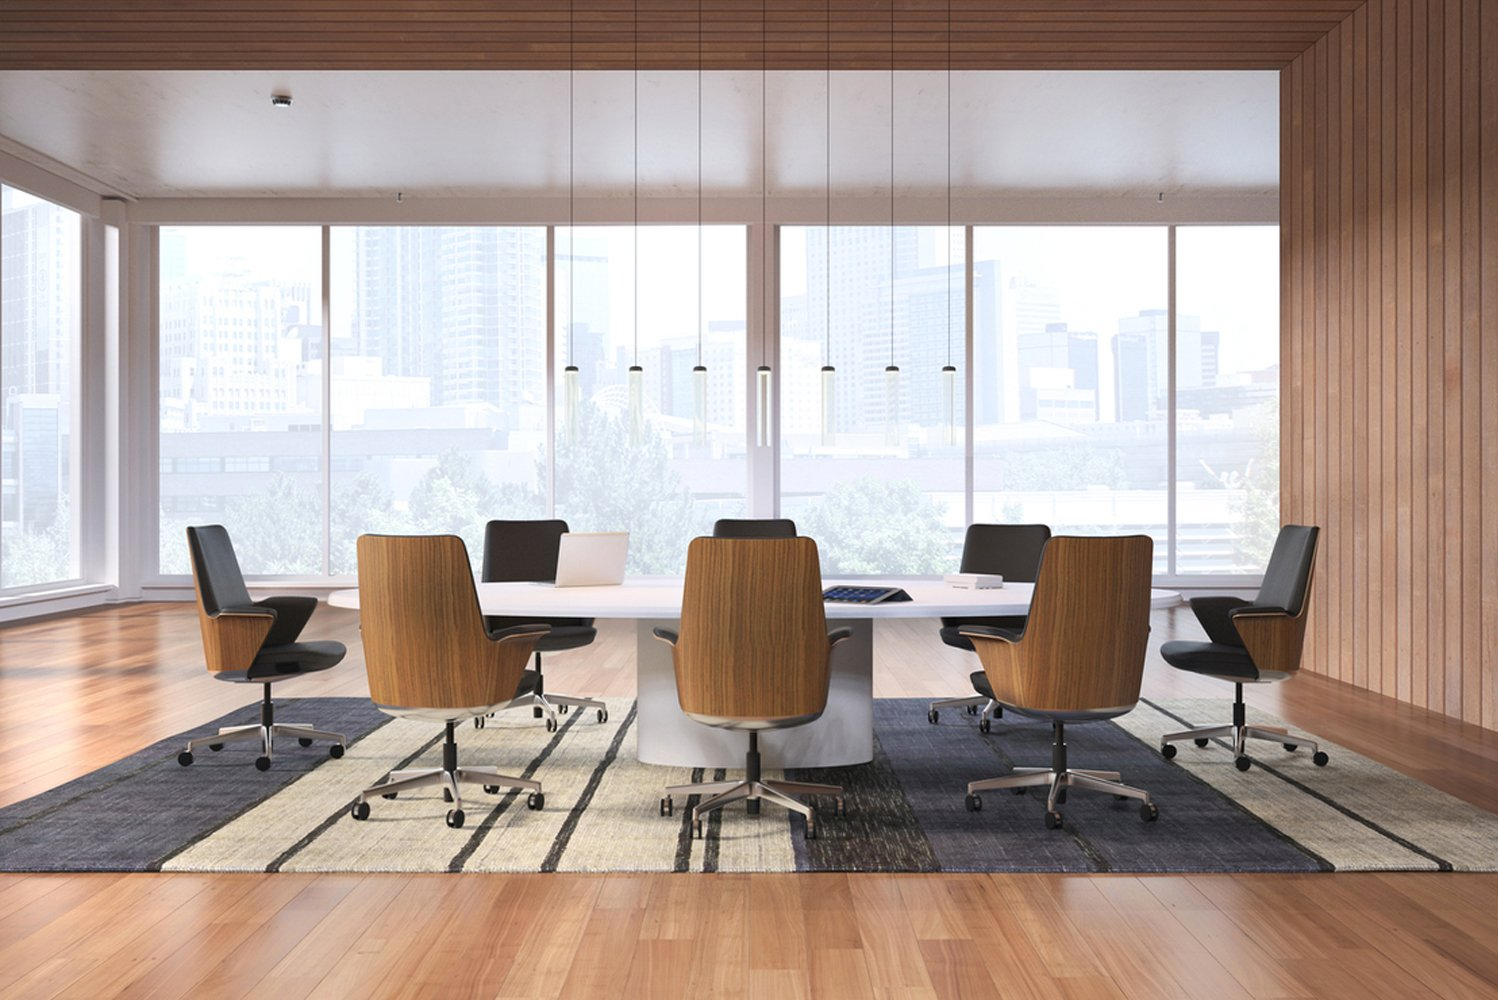 Humanscale launched its first executive boardroom seating product, Summa.